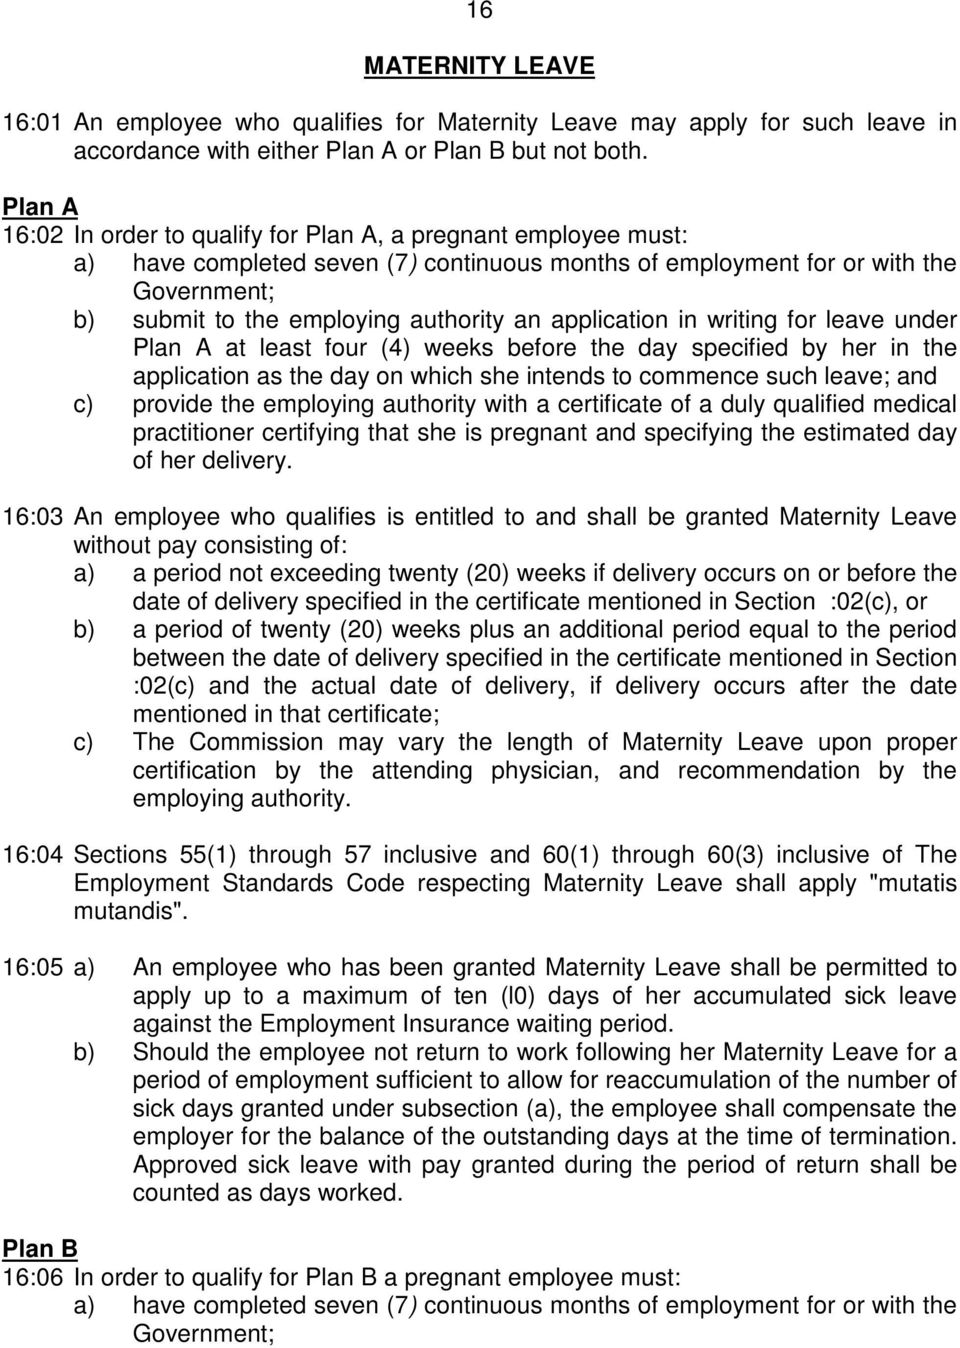 application in writing for leave under Plan A at least four (4) weeks before the day specified by her in the application as the day on which she intends to commence such leave; and c) provide the